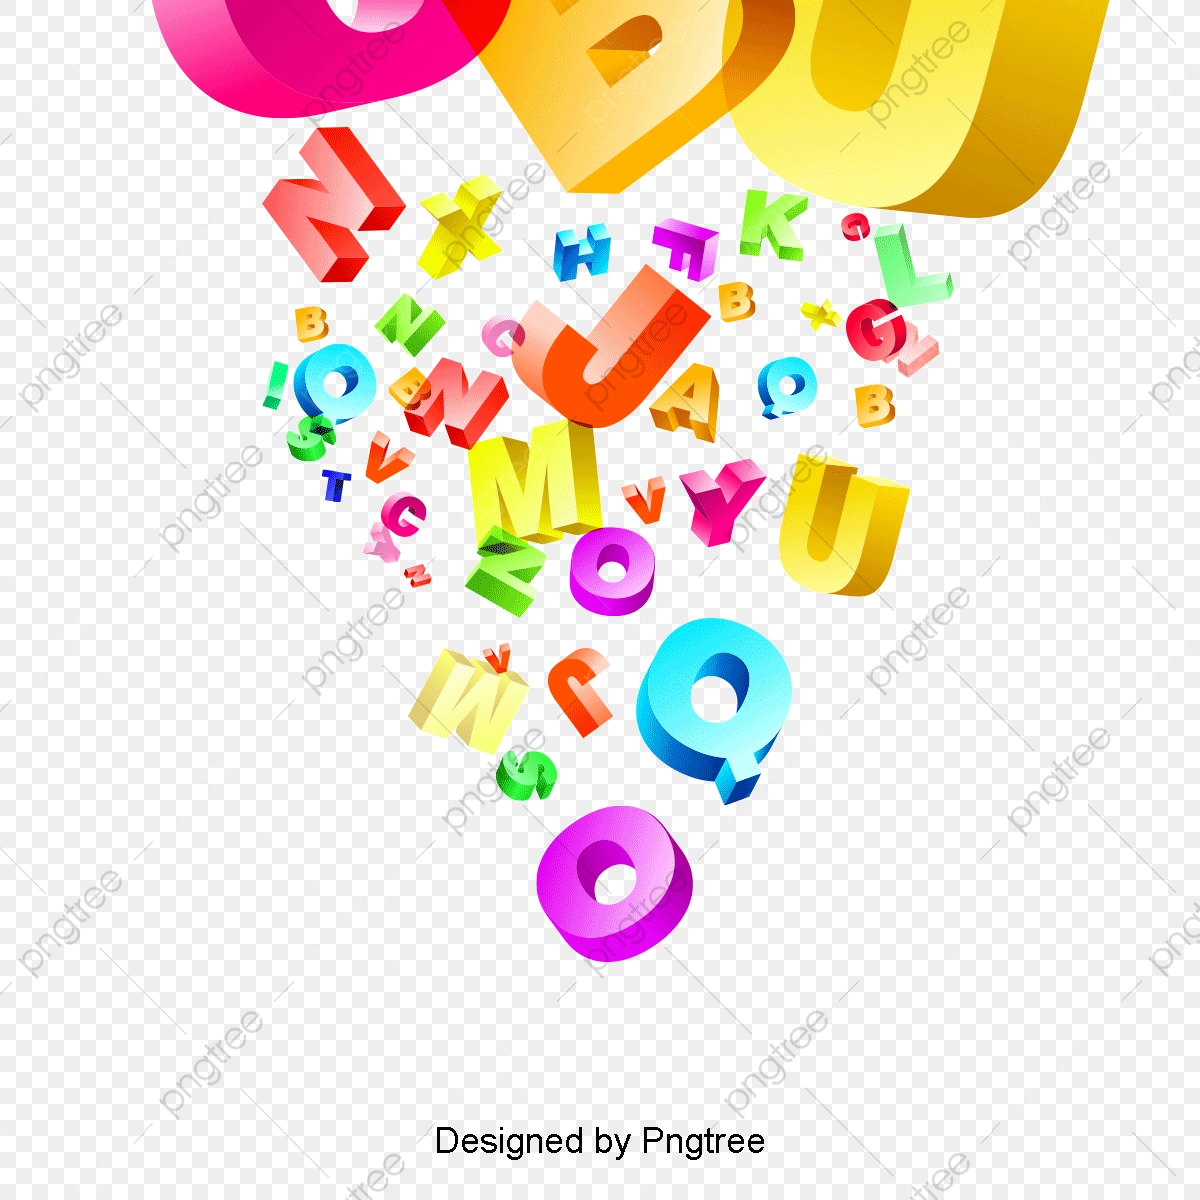 English clipart resource. Colorful abstract alphabet bright